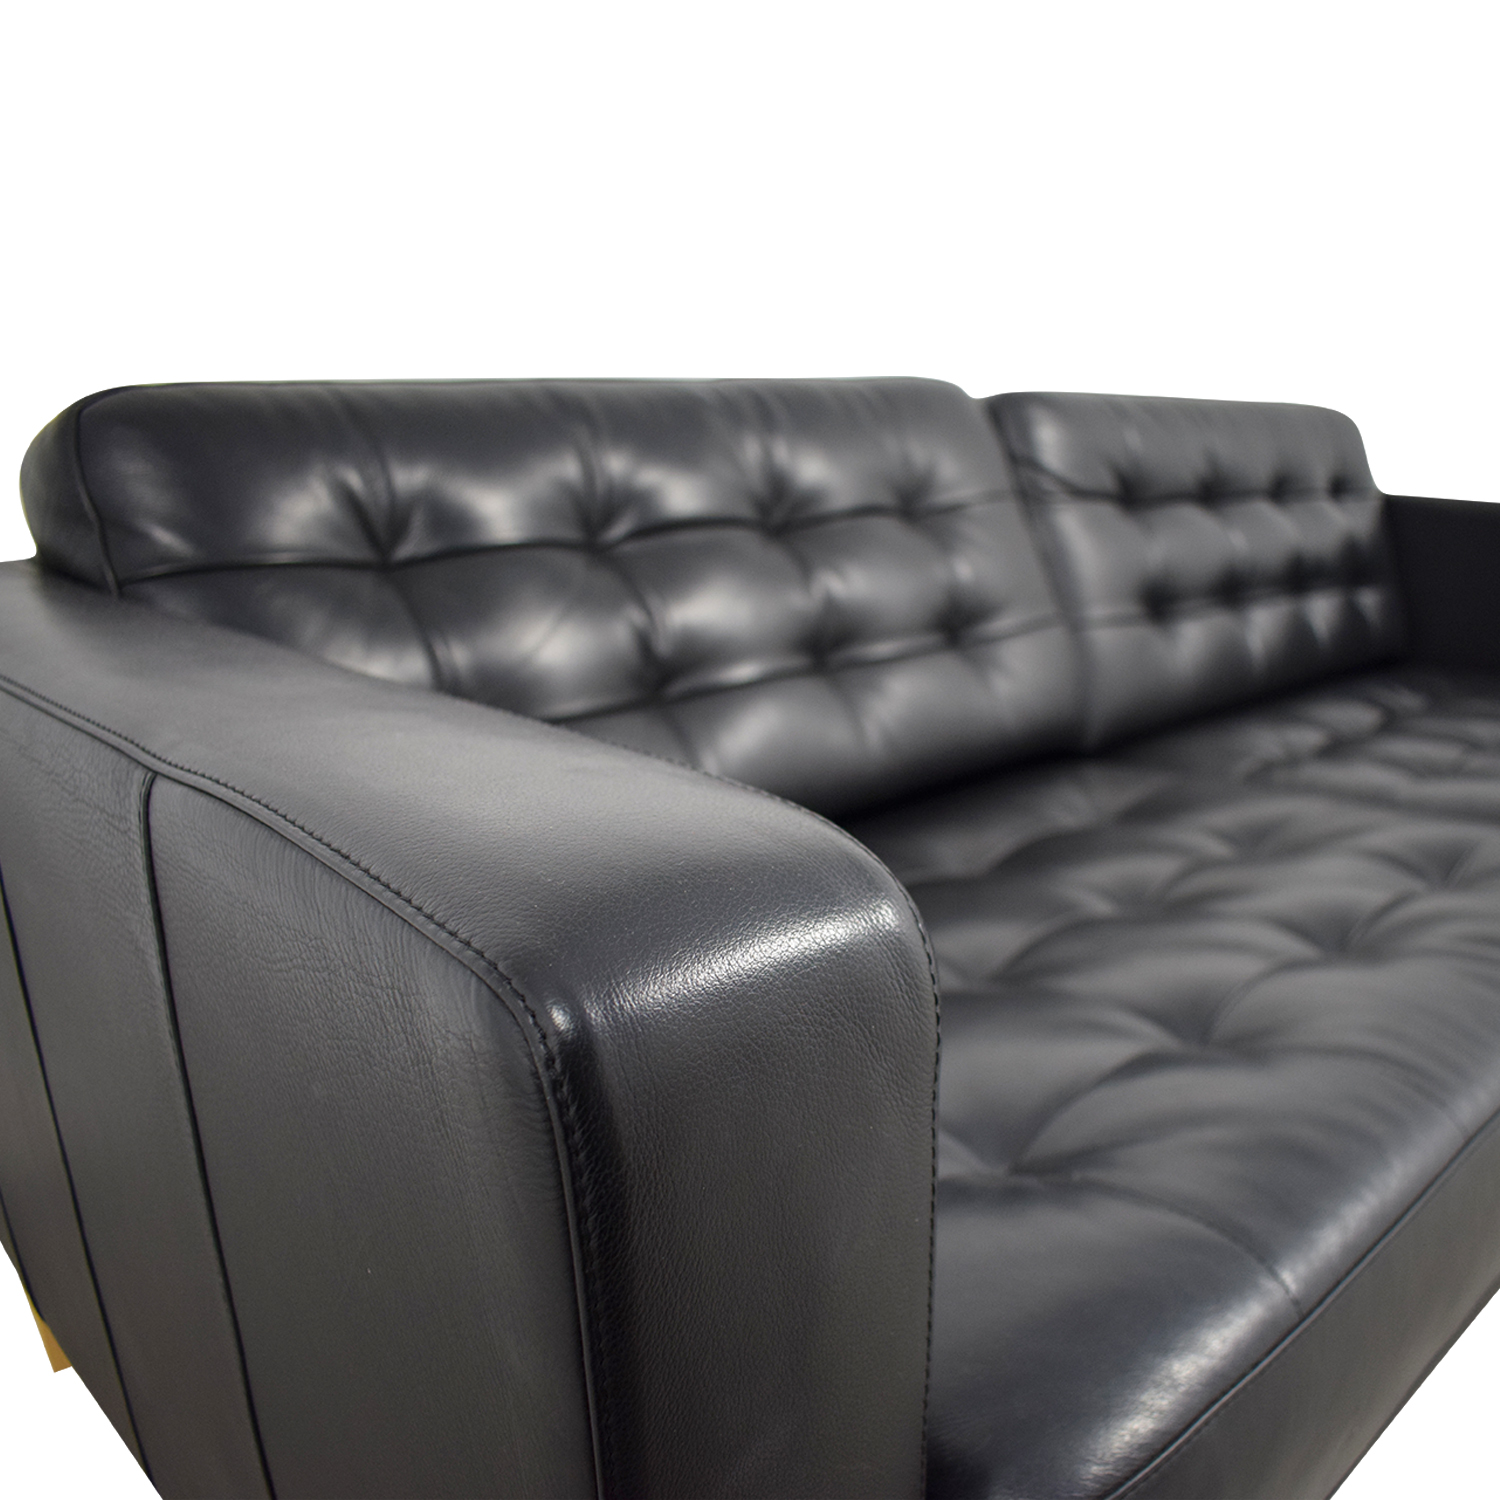 ... IKEA IKEA Landskrona Black Tufted Leather Sofa Black